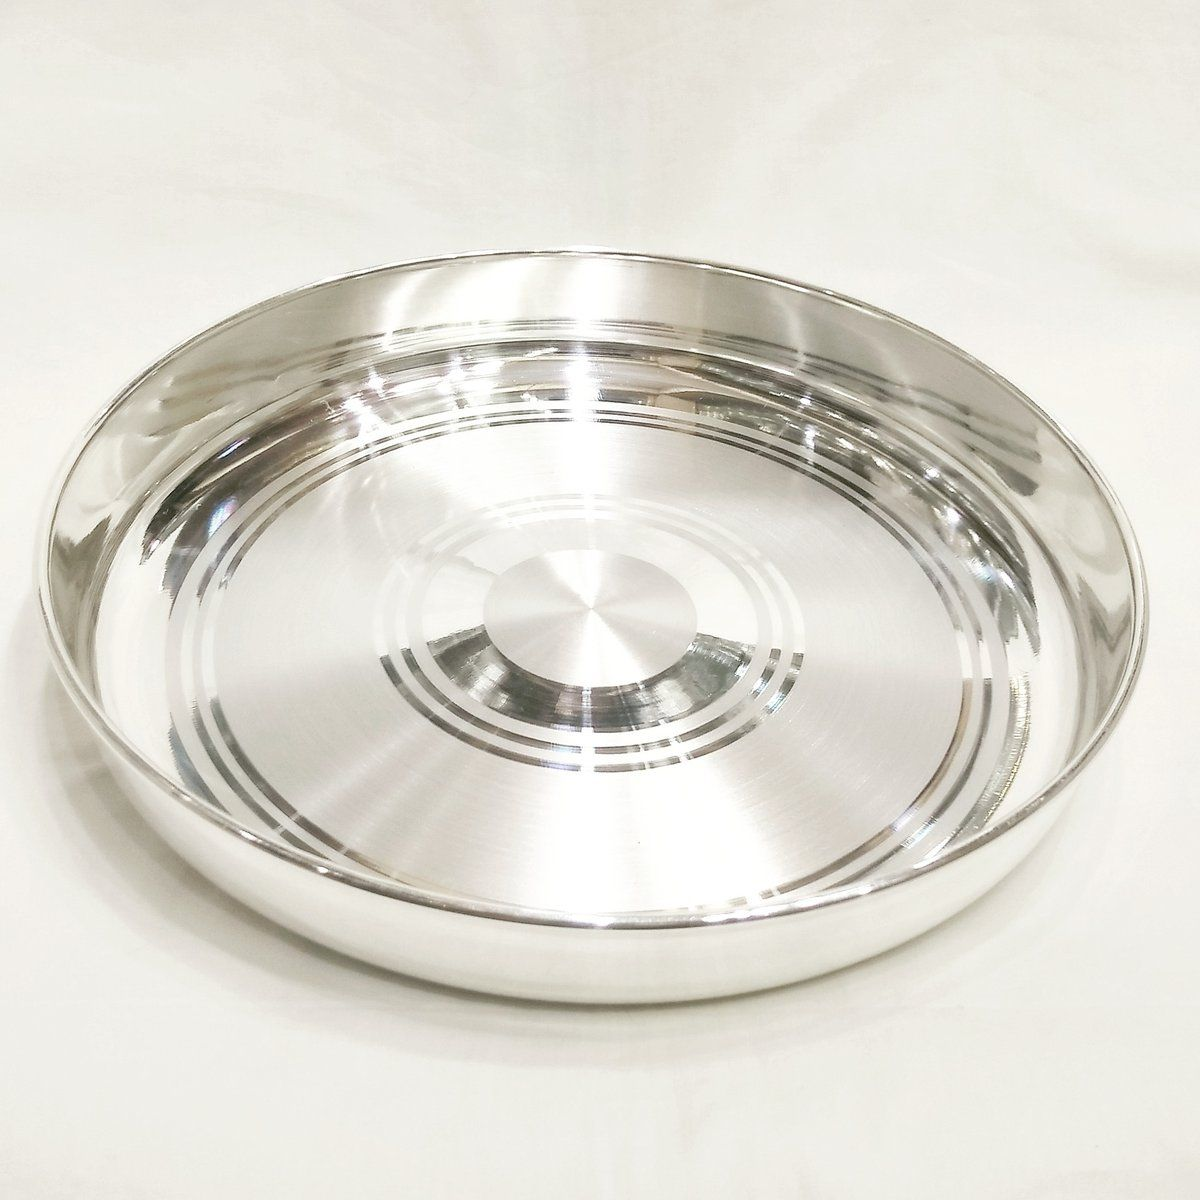 Silver plate your plate//tray with pure silver